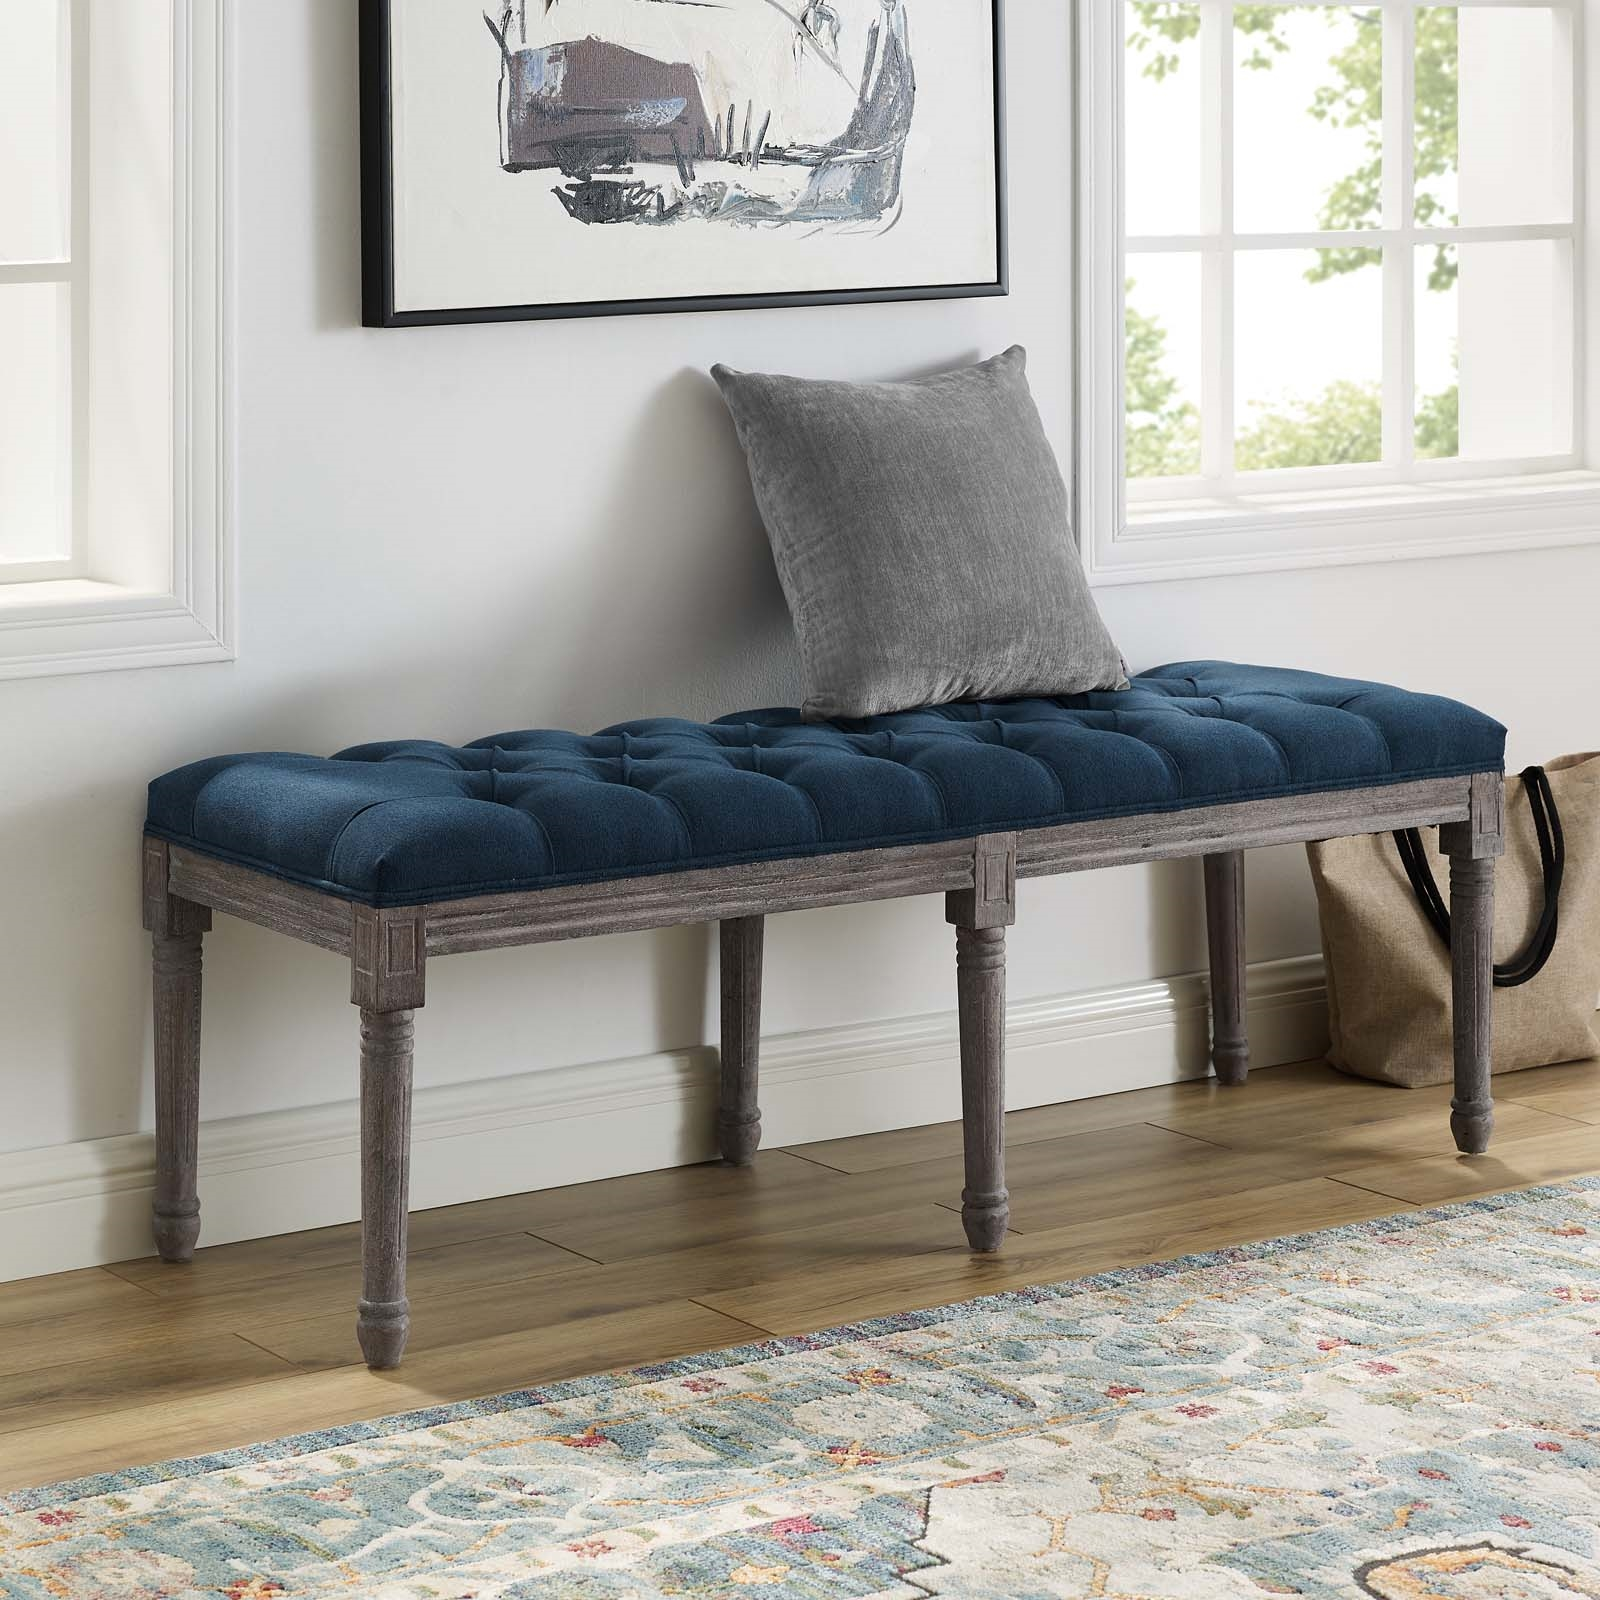 Province French Vintage Upholstered Fabric Bench in Navy